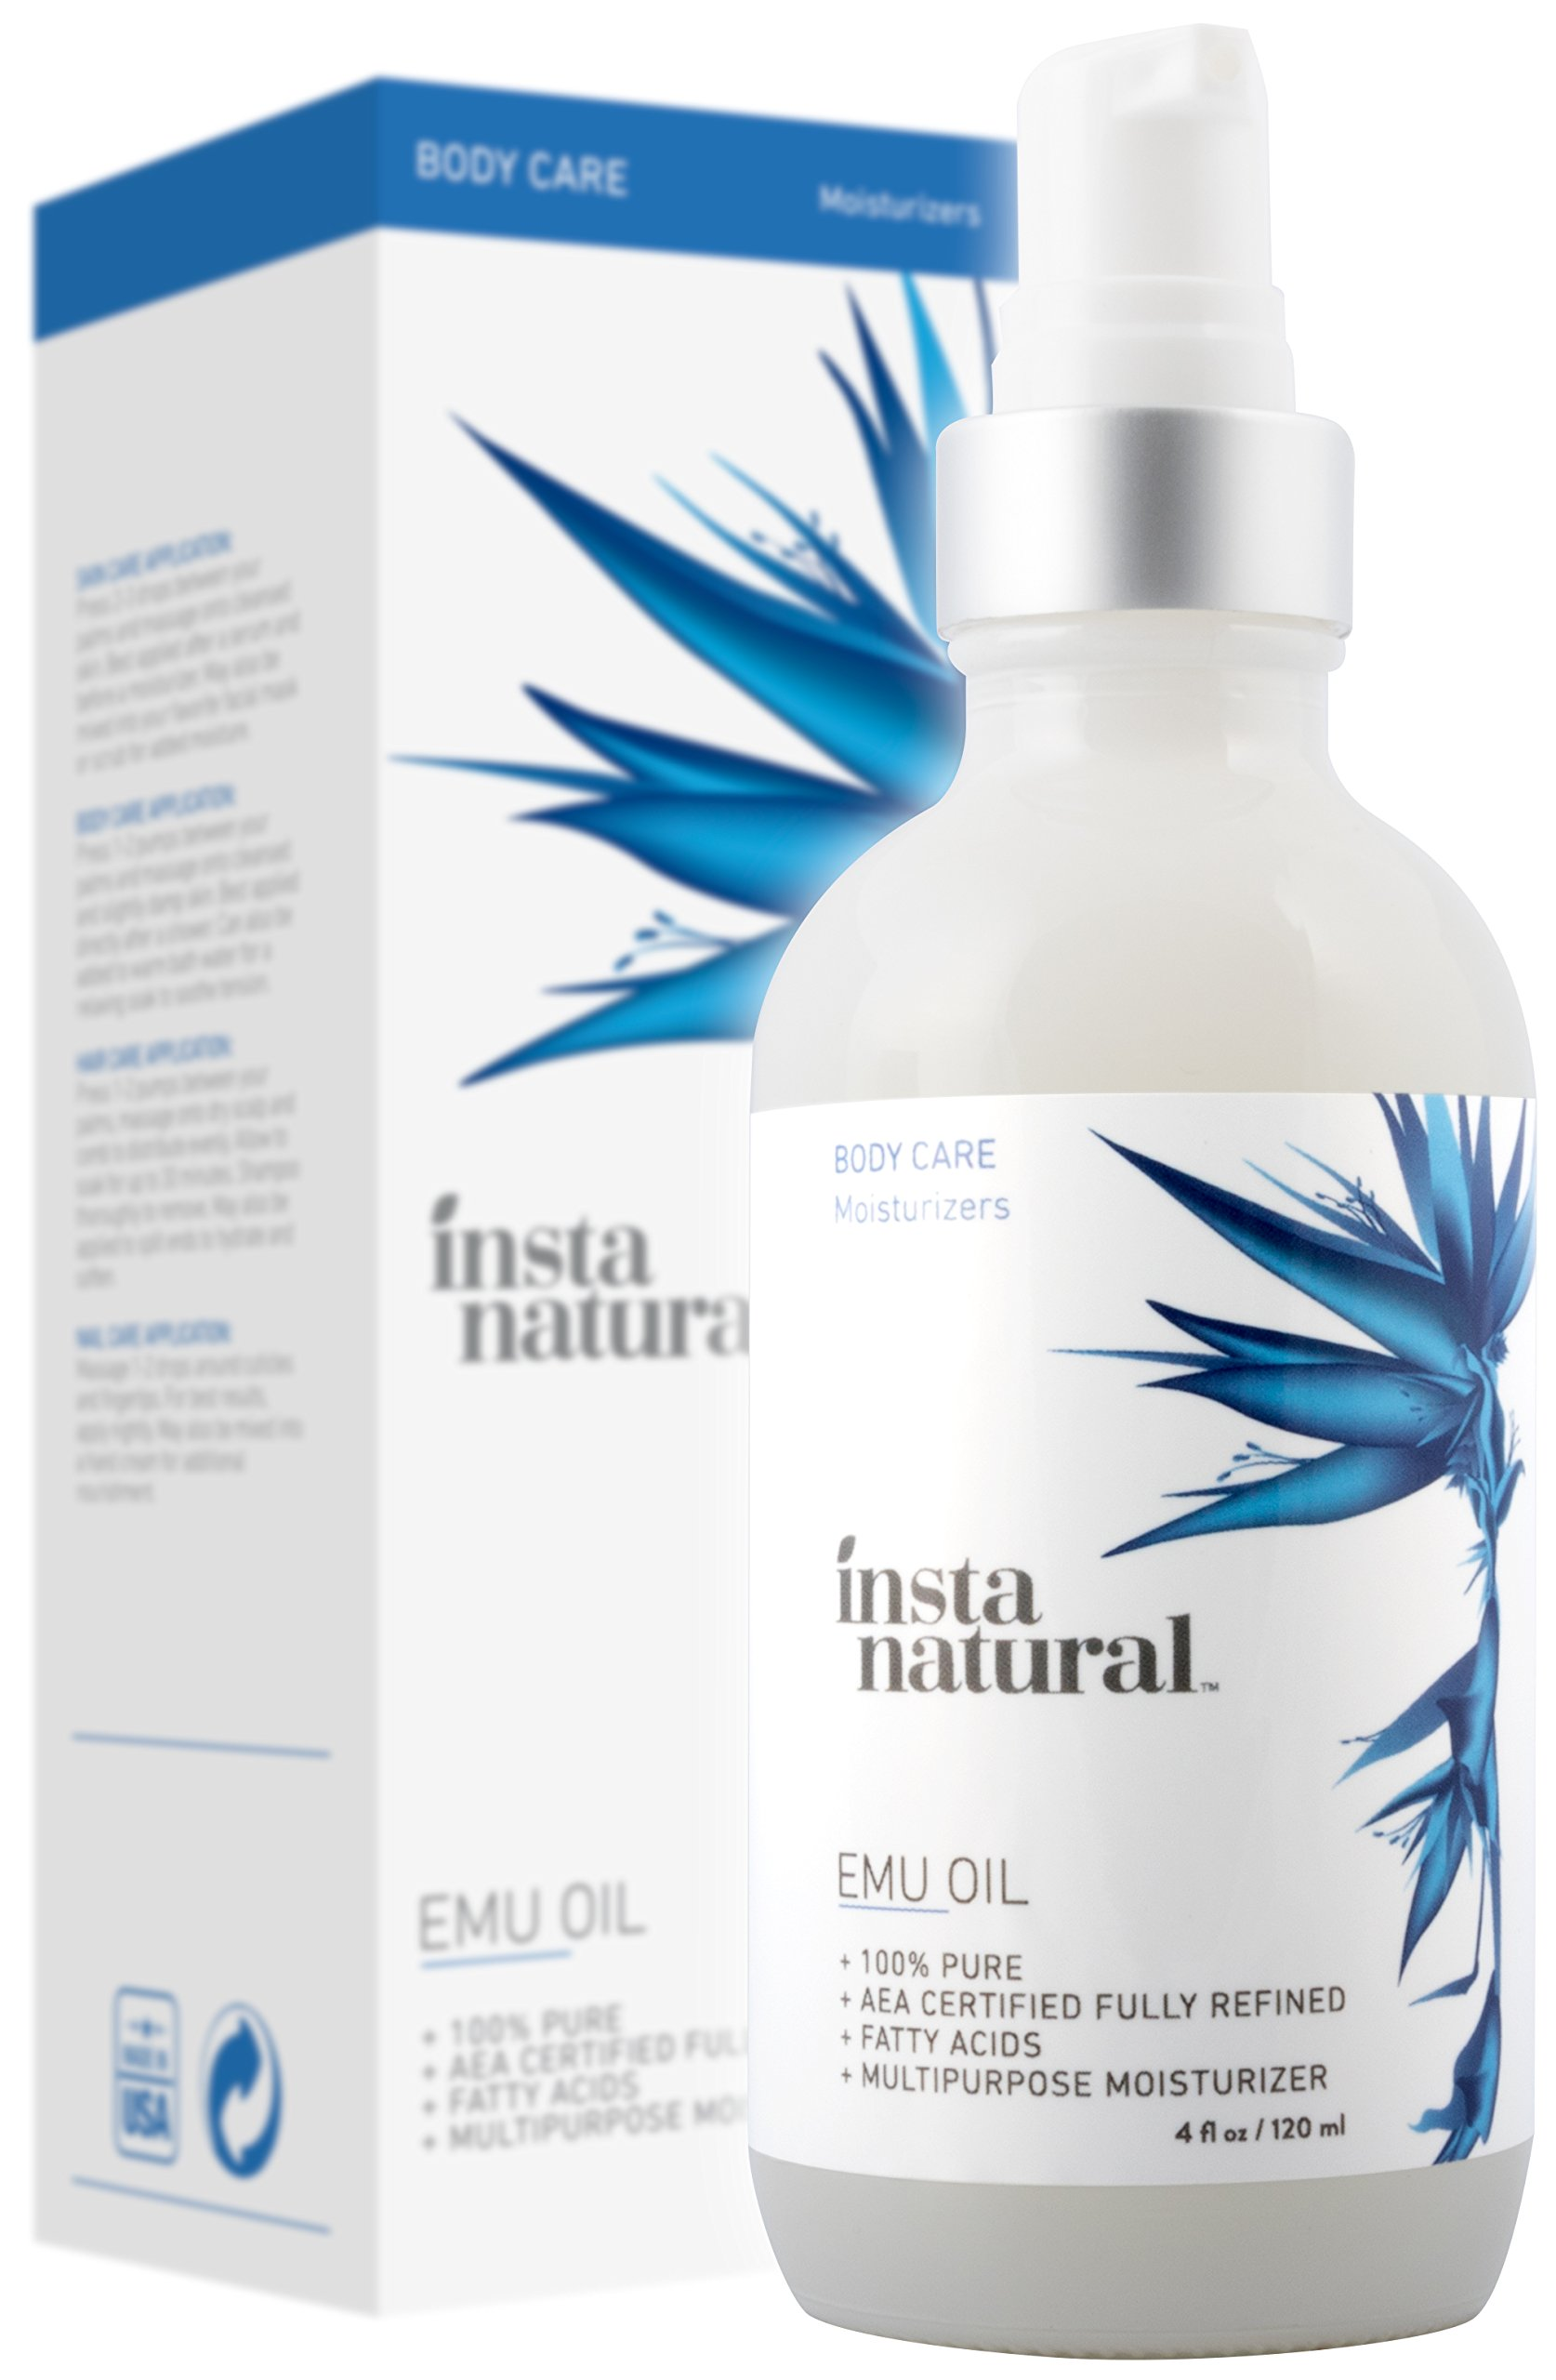 Emu Oil - AEA Certified Pure Moisturizer for Strengthened Hair, Stretch Marks, Scars, Joint & Muscle Pain - For Body, Skin, Eyes, Face & Nails - Essential Beauty Product - InstaNatural - 4 oz by InstaNatural